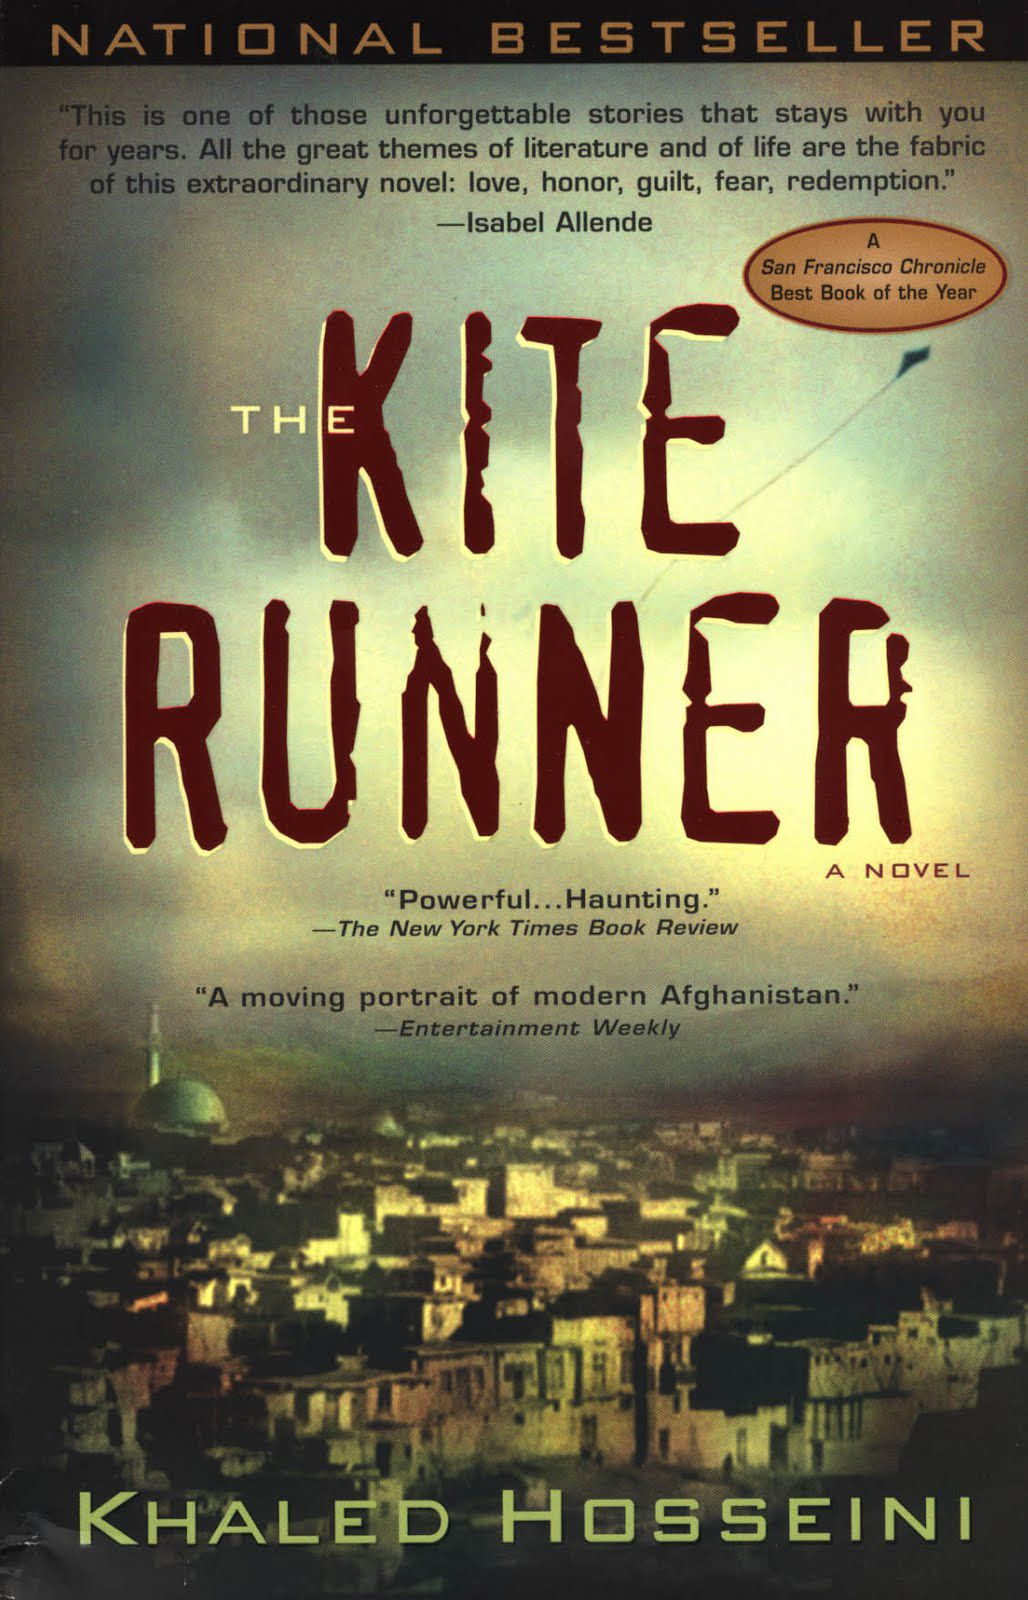 the kite runner by khaled hosseini book review  the kite runner by khaled hosseini book review